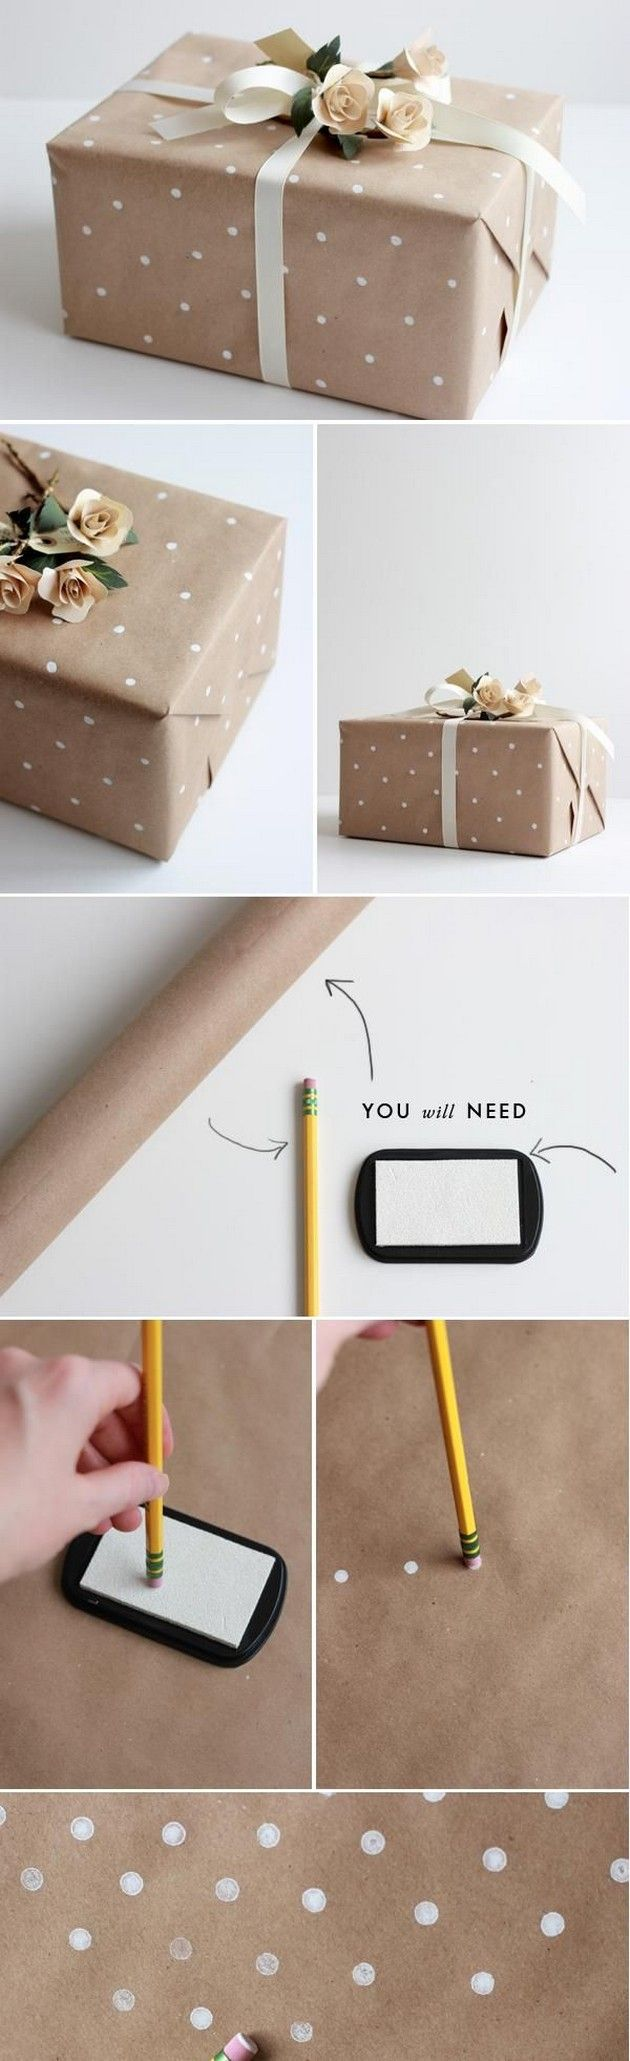 This simple DIY will help you add a personal touch to the season's wrapping paper with polka dots.